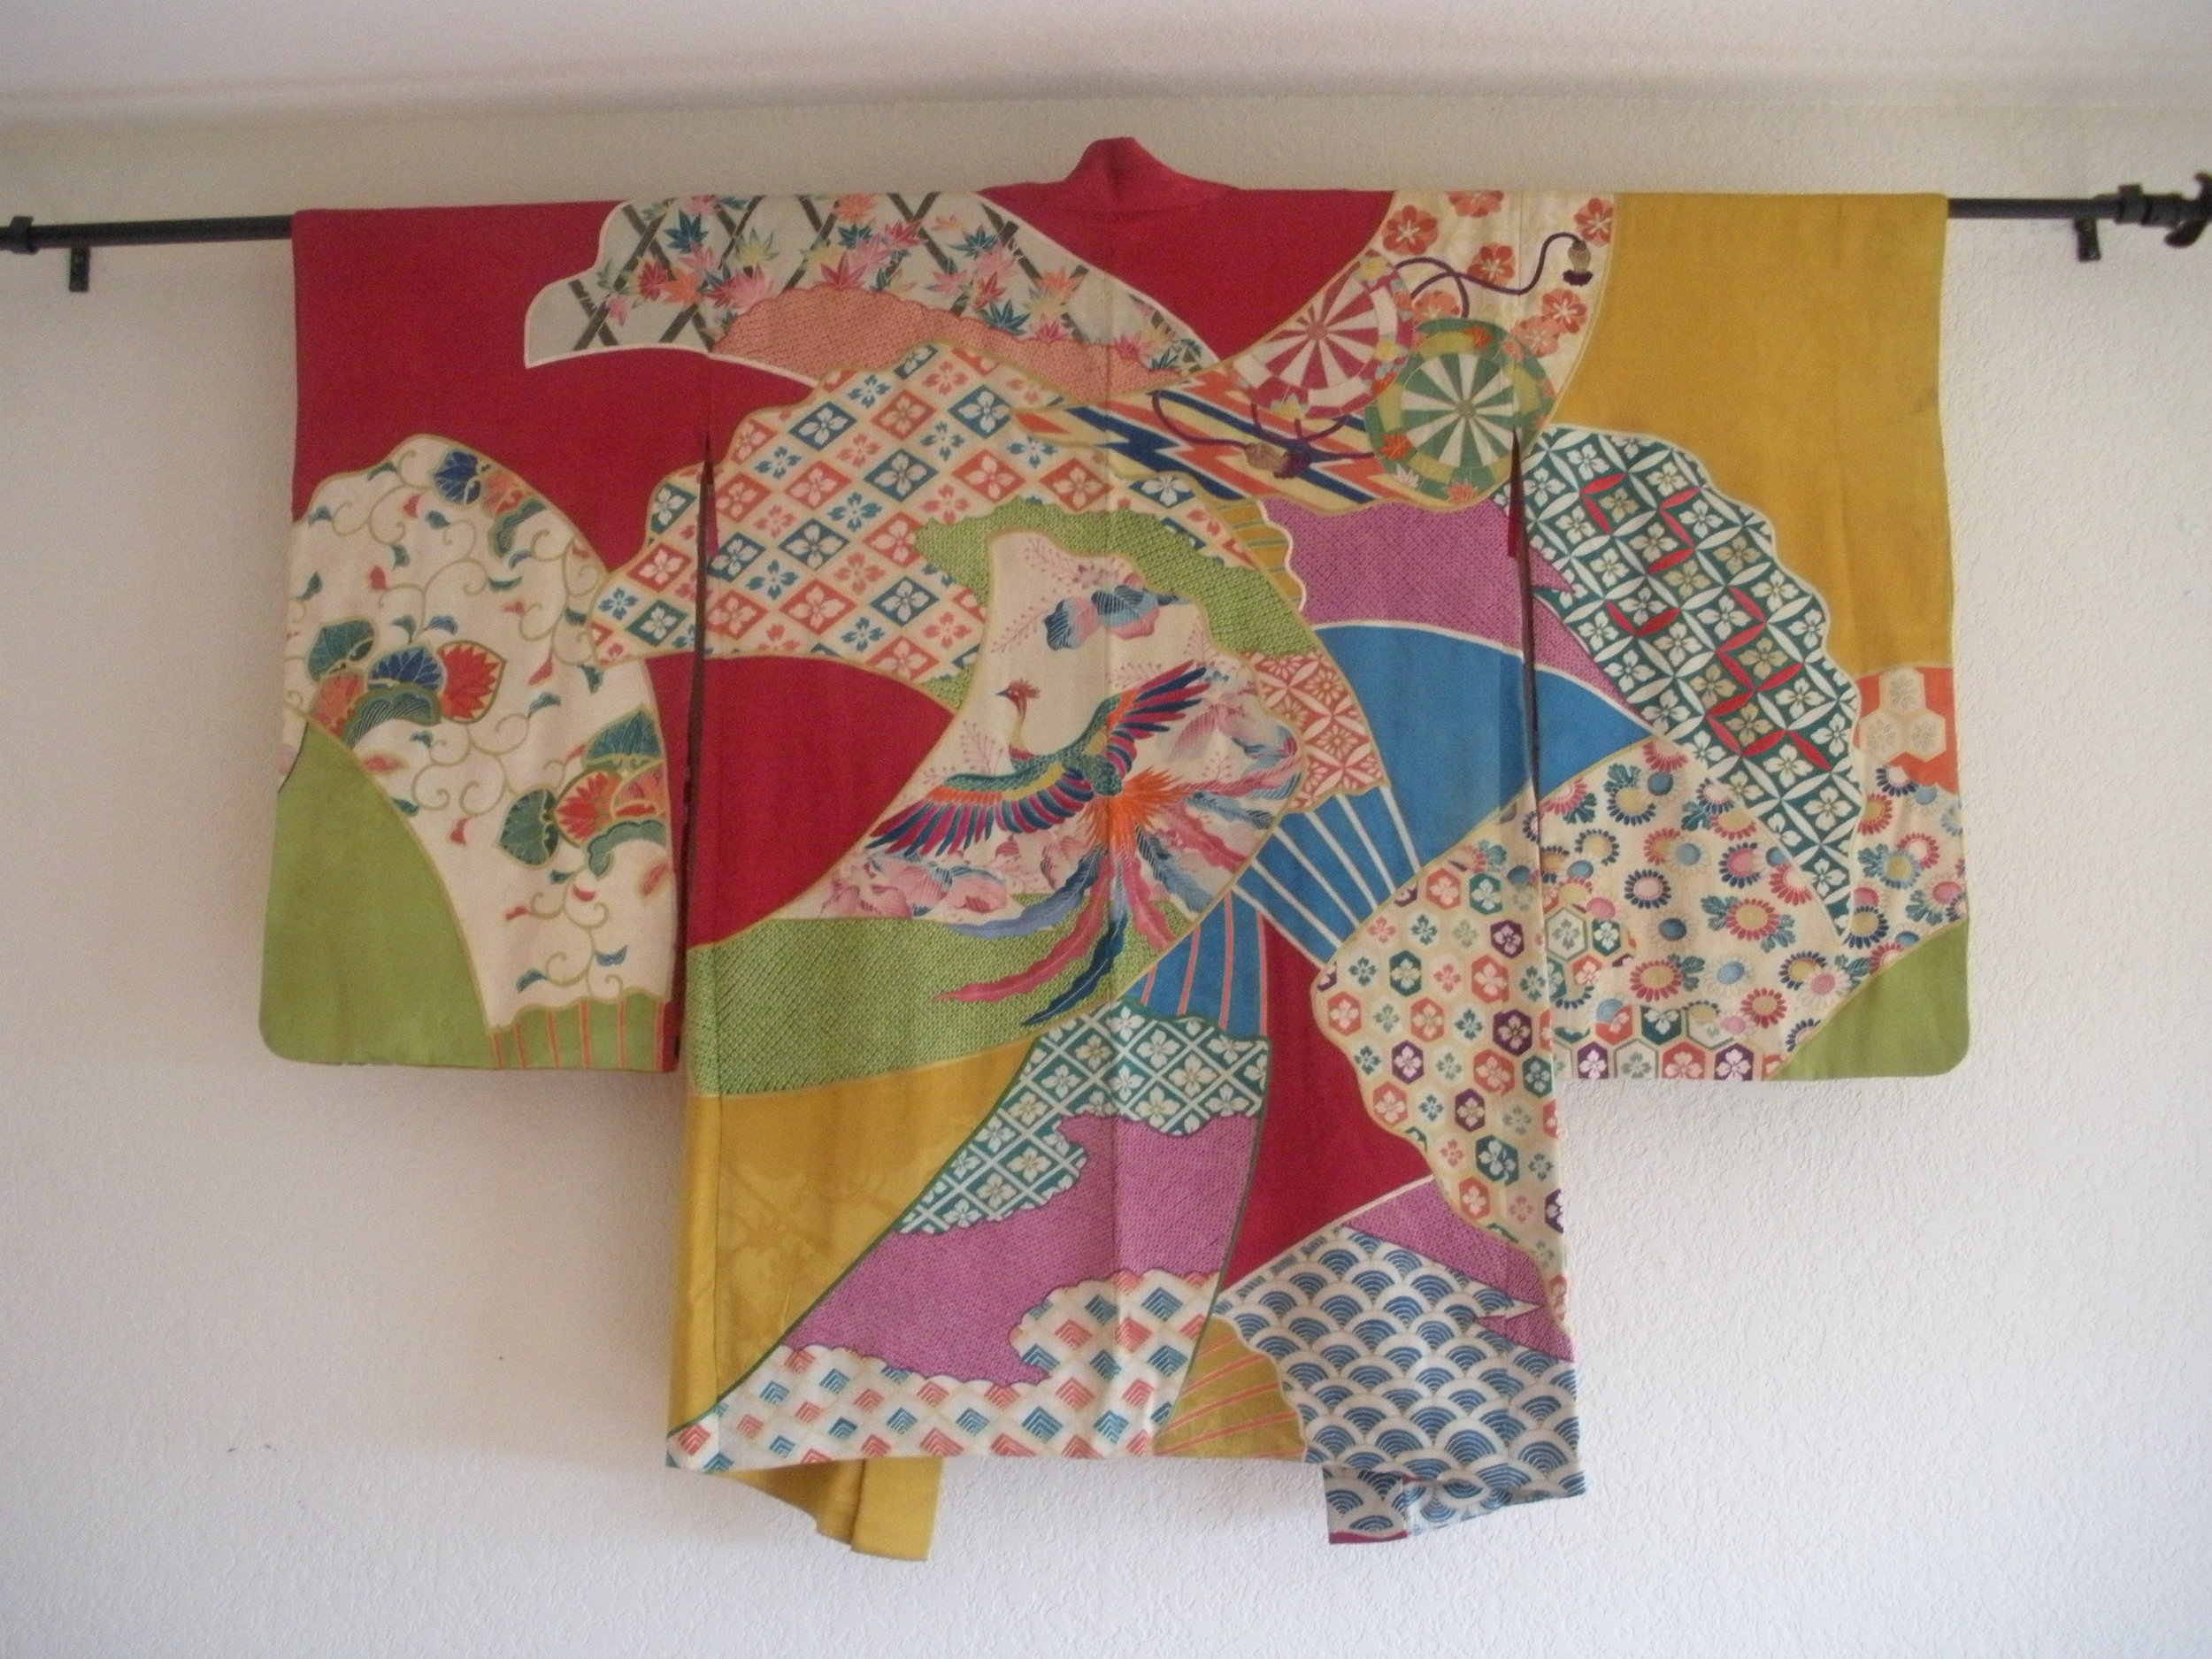 """This is a very cool haori we collected. It has good length, like a Taisho Piece, except the condition is just too good. As the Japanese dealers would say: """"sen-zen, sen-go."""" Basically, before or after the war. Sorry if that's vague. There's a brilliant hand embroidered phoenix in colors that invoke for me a Hokusai crane I saw at a museum once. The self is unique: I've handled literally tens of thousands of haoris, but I've never seen one like this. It's oatched together of various kimono silks, mostly jacquards, with a ton of artwork including shibori and yuzen. The textiles are joined seemlessly, with embroidery all over the so it all looks like one textile. Not for sale, sorry."""